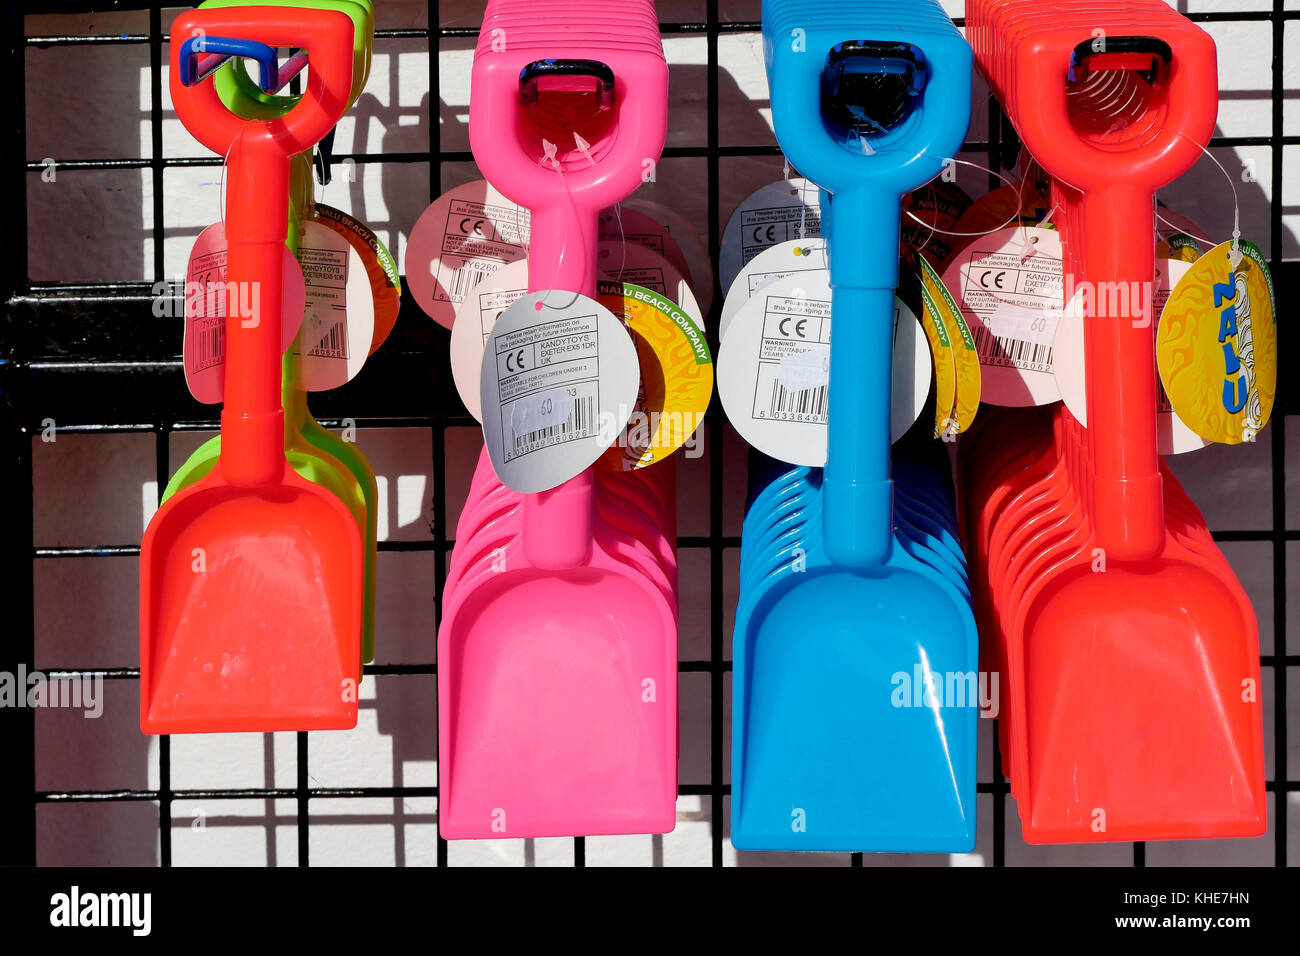 Brightly coloured plastic toy spades on display outside a shop in Lyme Regis in Dorset. - Stock Image